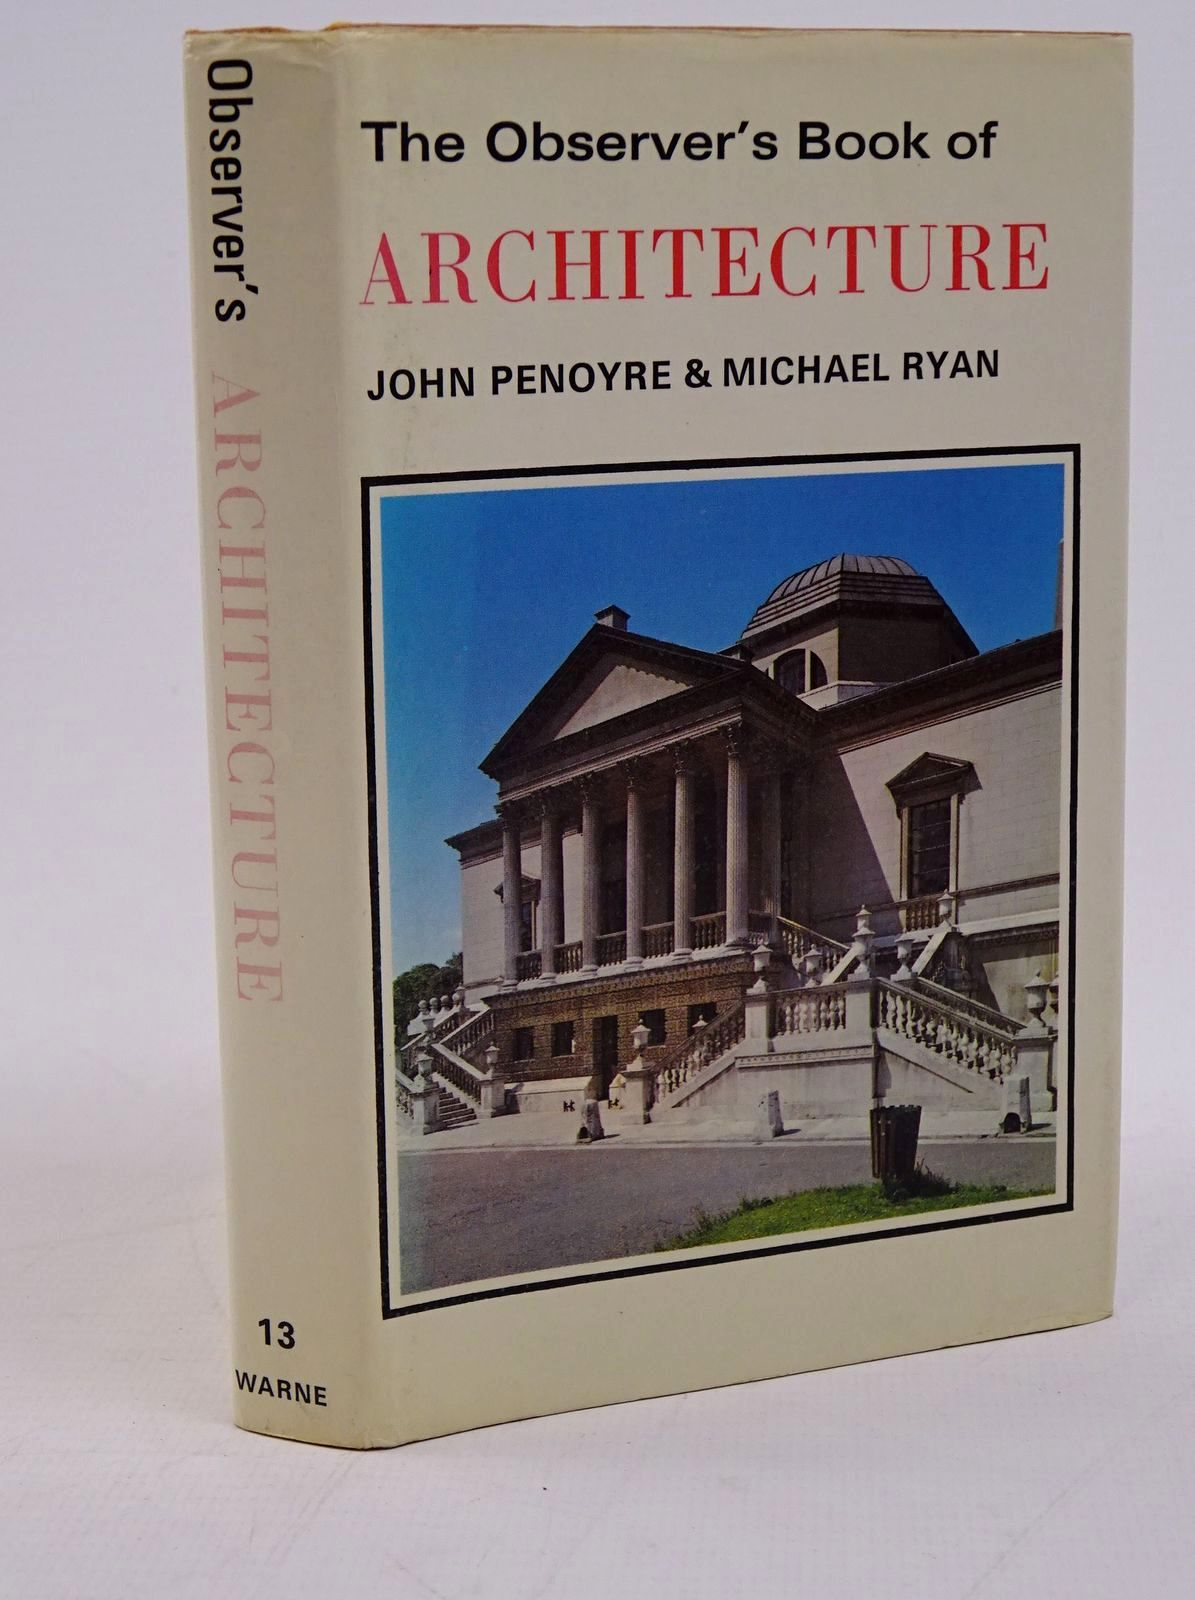 Photo of THE OBSERVER'S BOOK OF ARCHITECTURE written by Penoyre, John Ryan, Michael illustrated by Penoyre, John Ryan, Michael published by Frederick Warne & Co Ltd. (STOCK CODE: 1317780)  for sale by Stella & Rose's Books